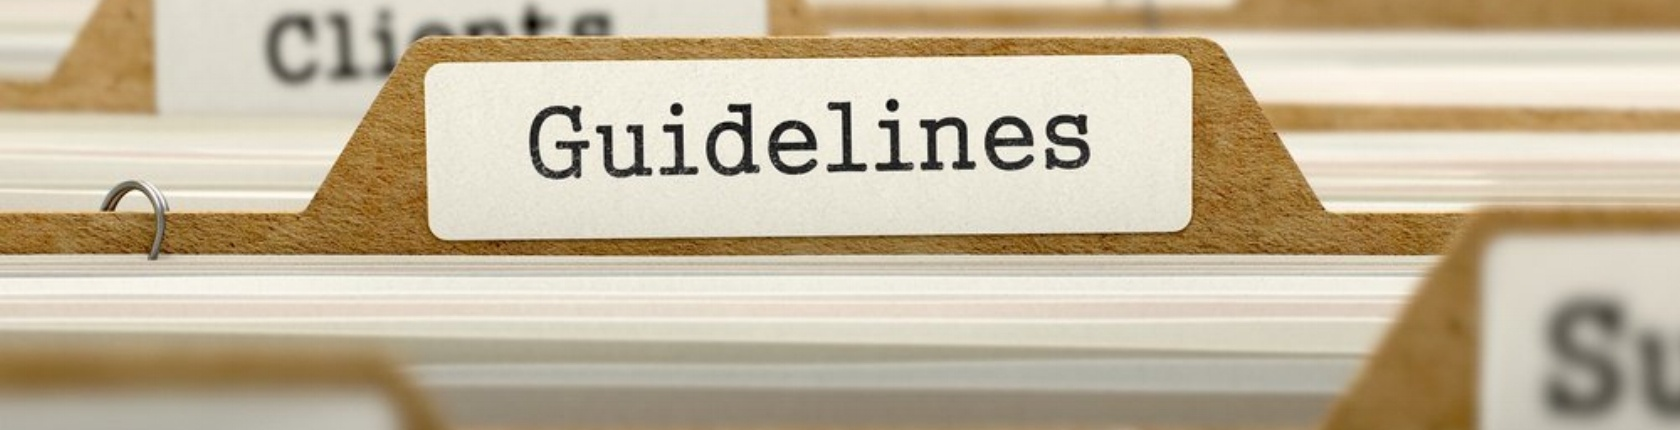 Guidelines Concept. Word on Folder Register of Card Index. Selective Focus.-893998-edited.jpeg